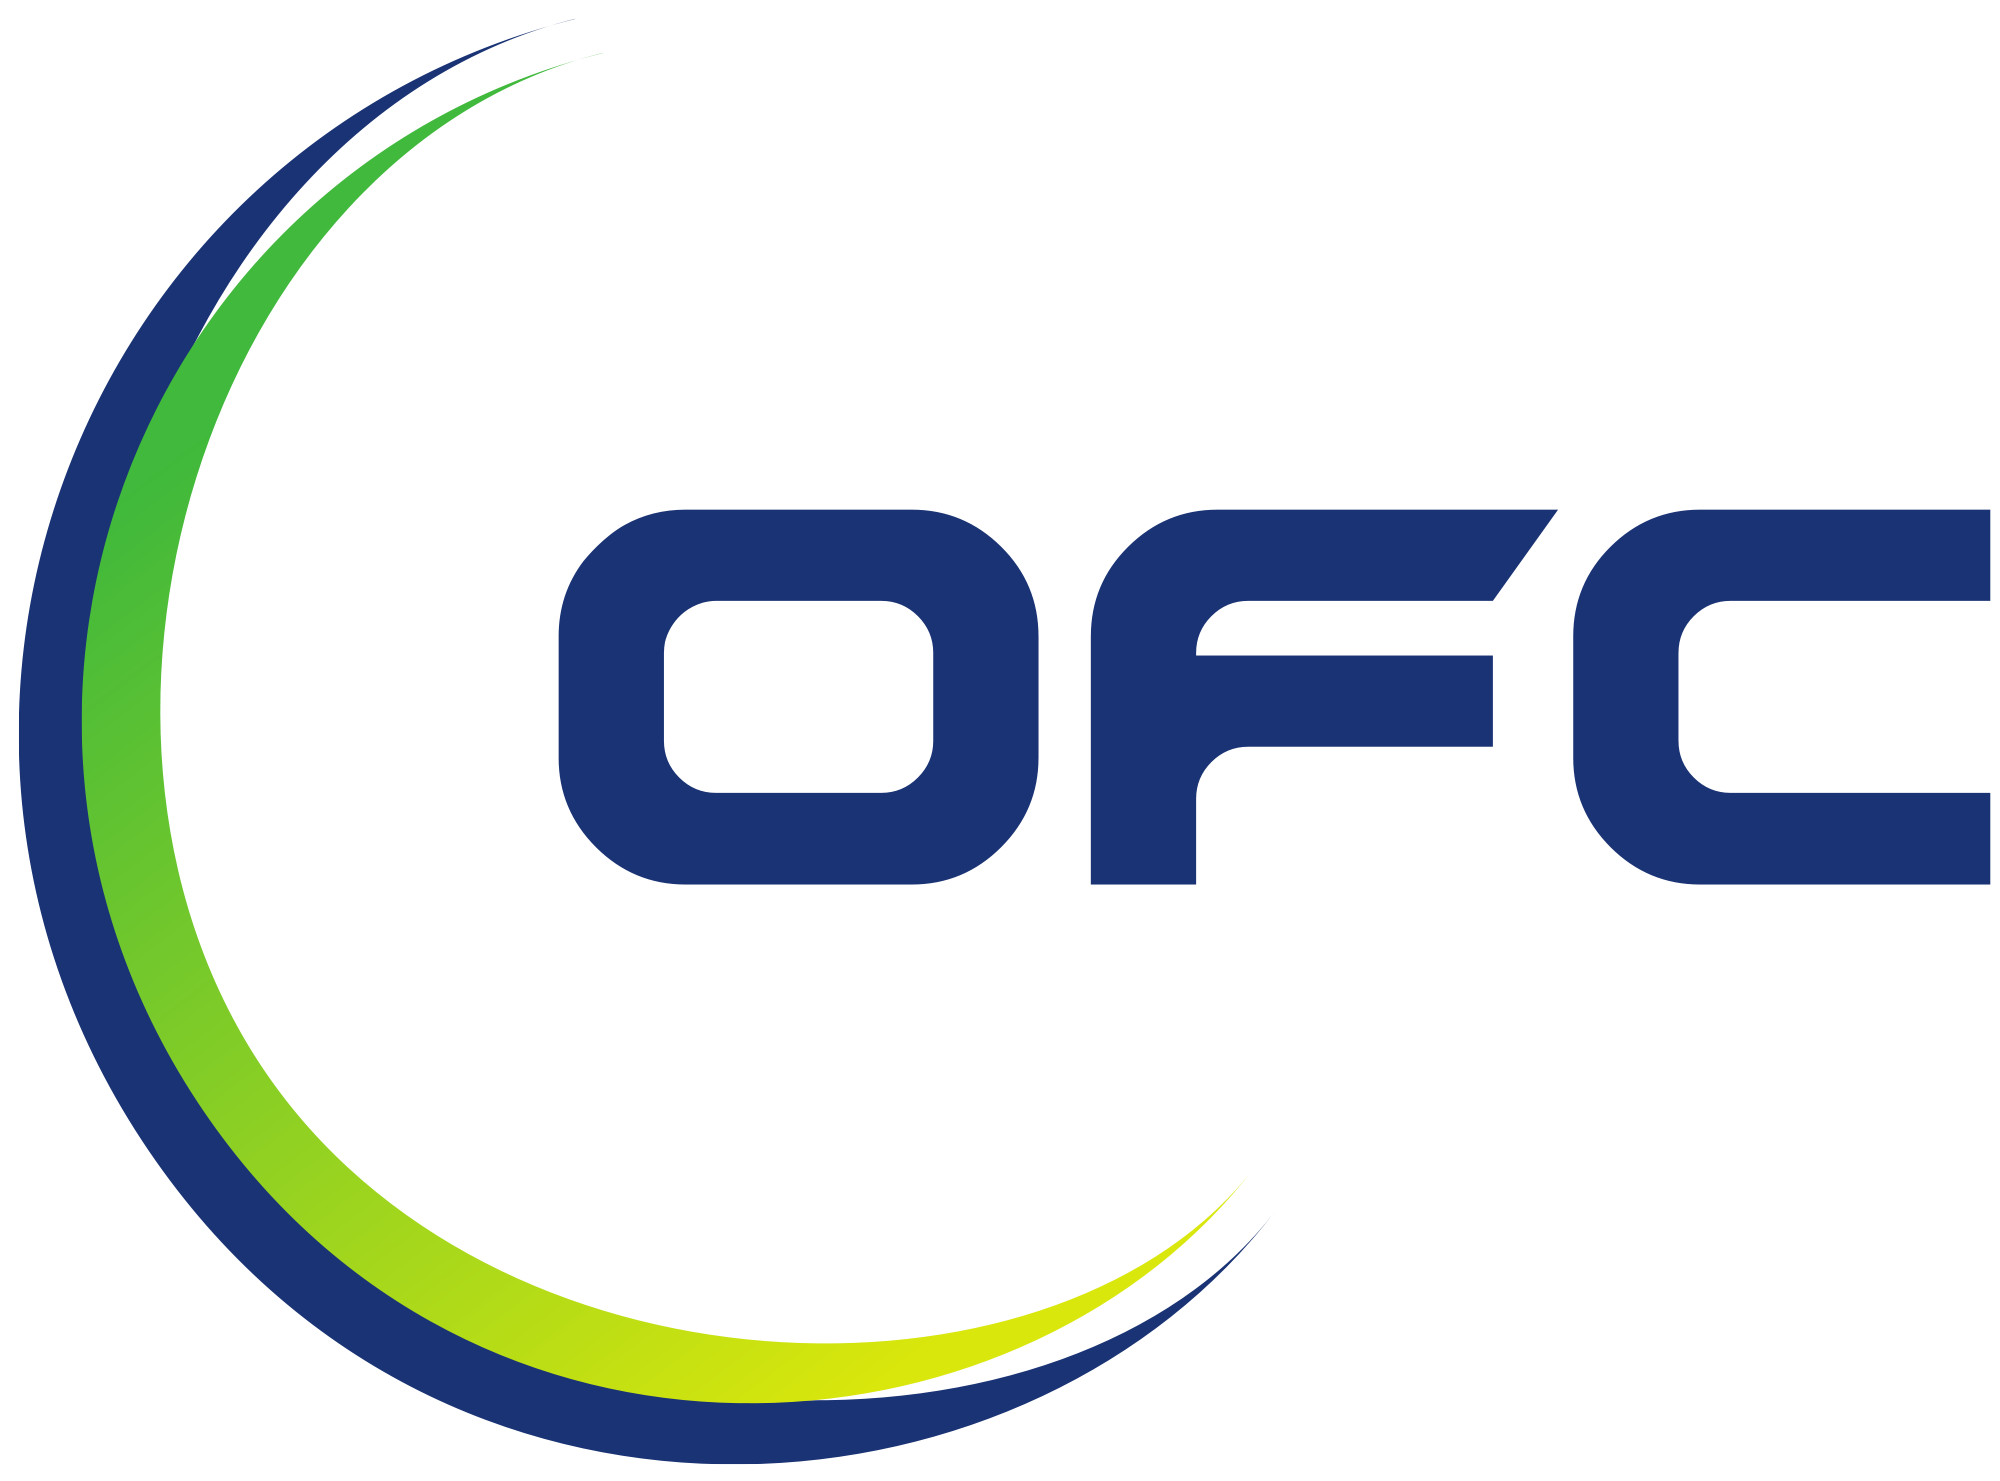 Oceania Football Confederation